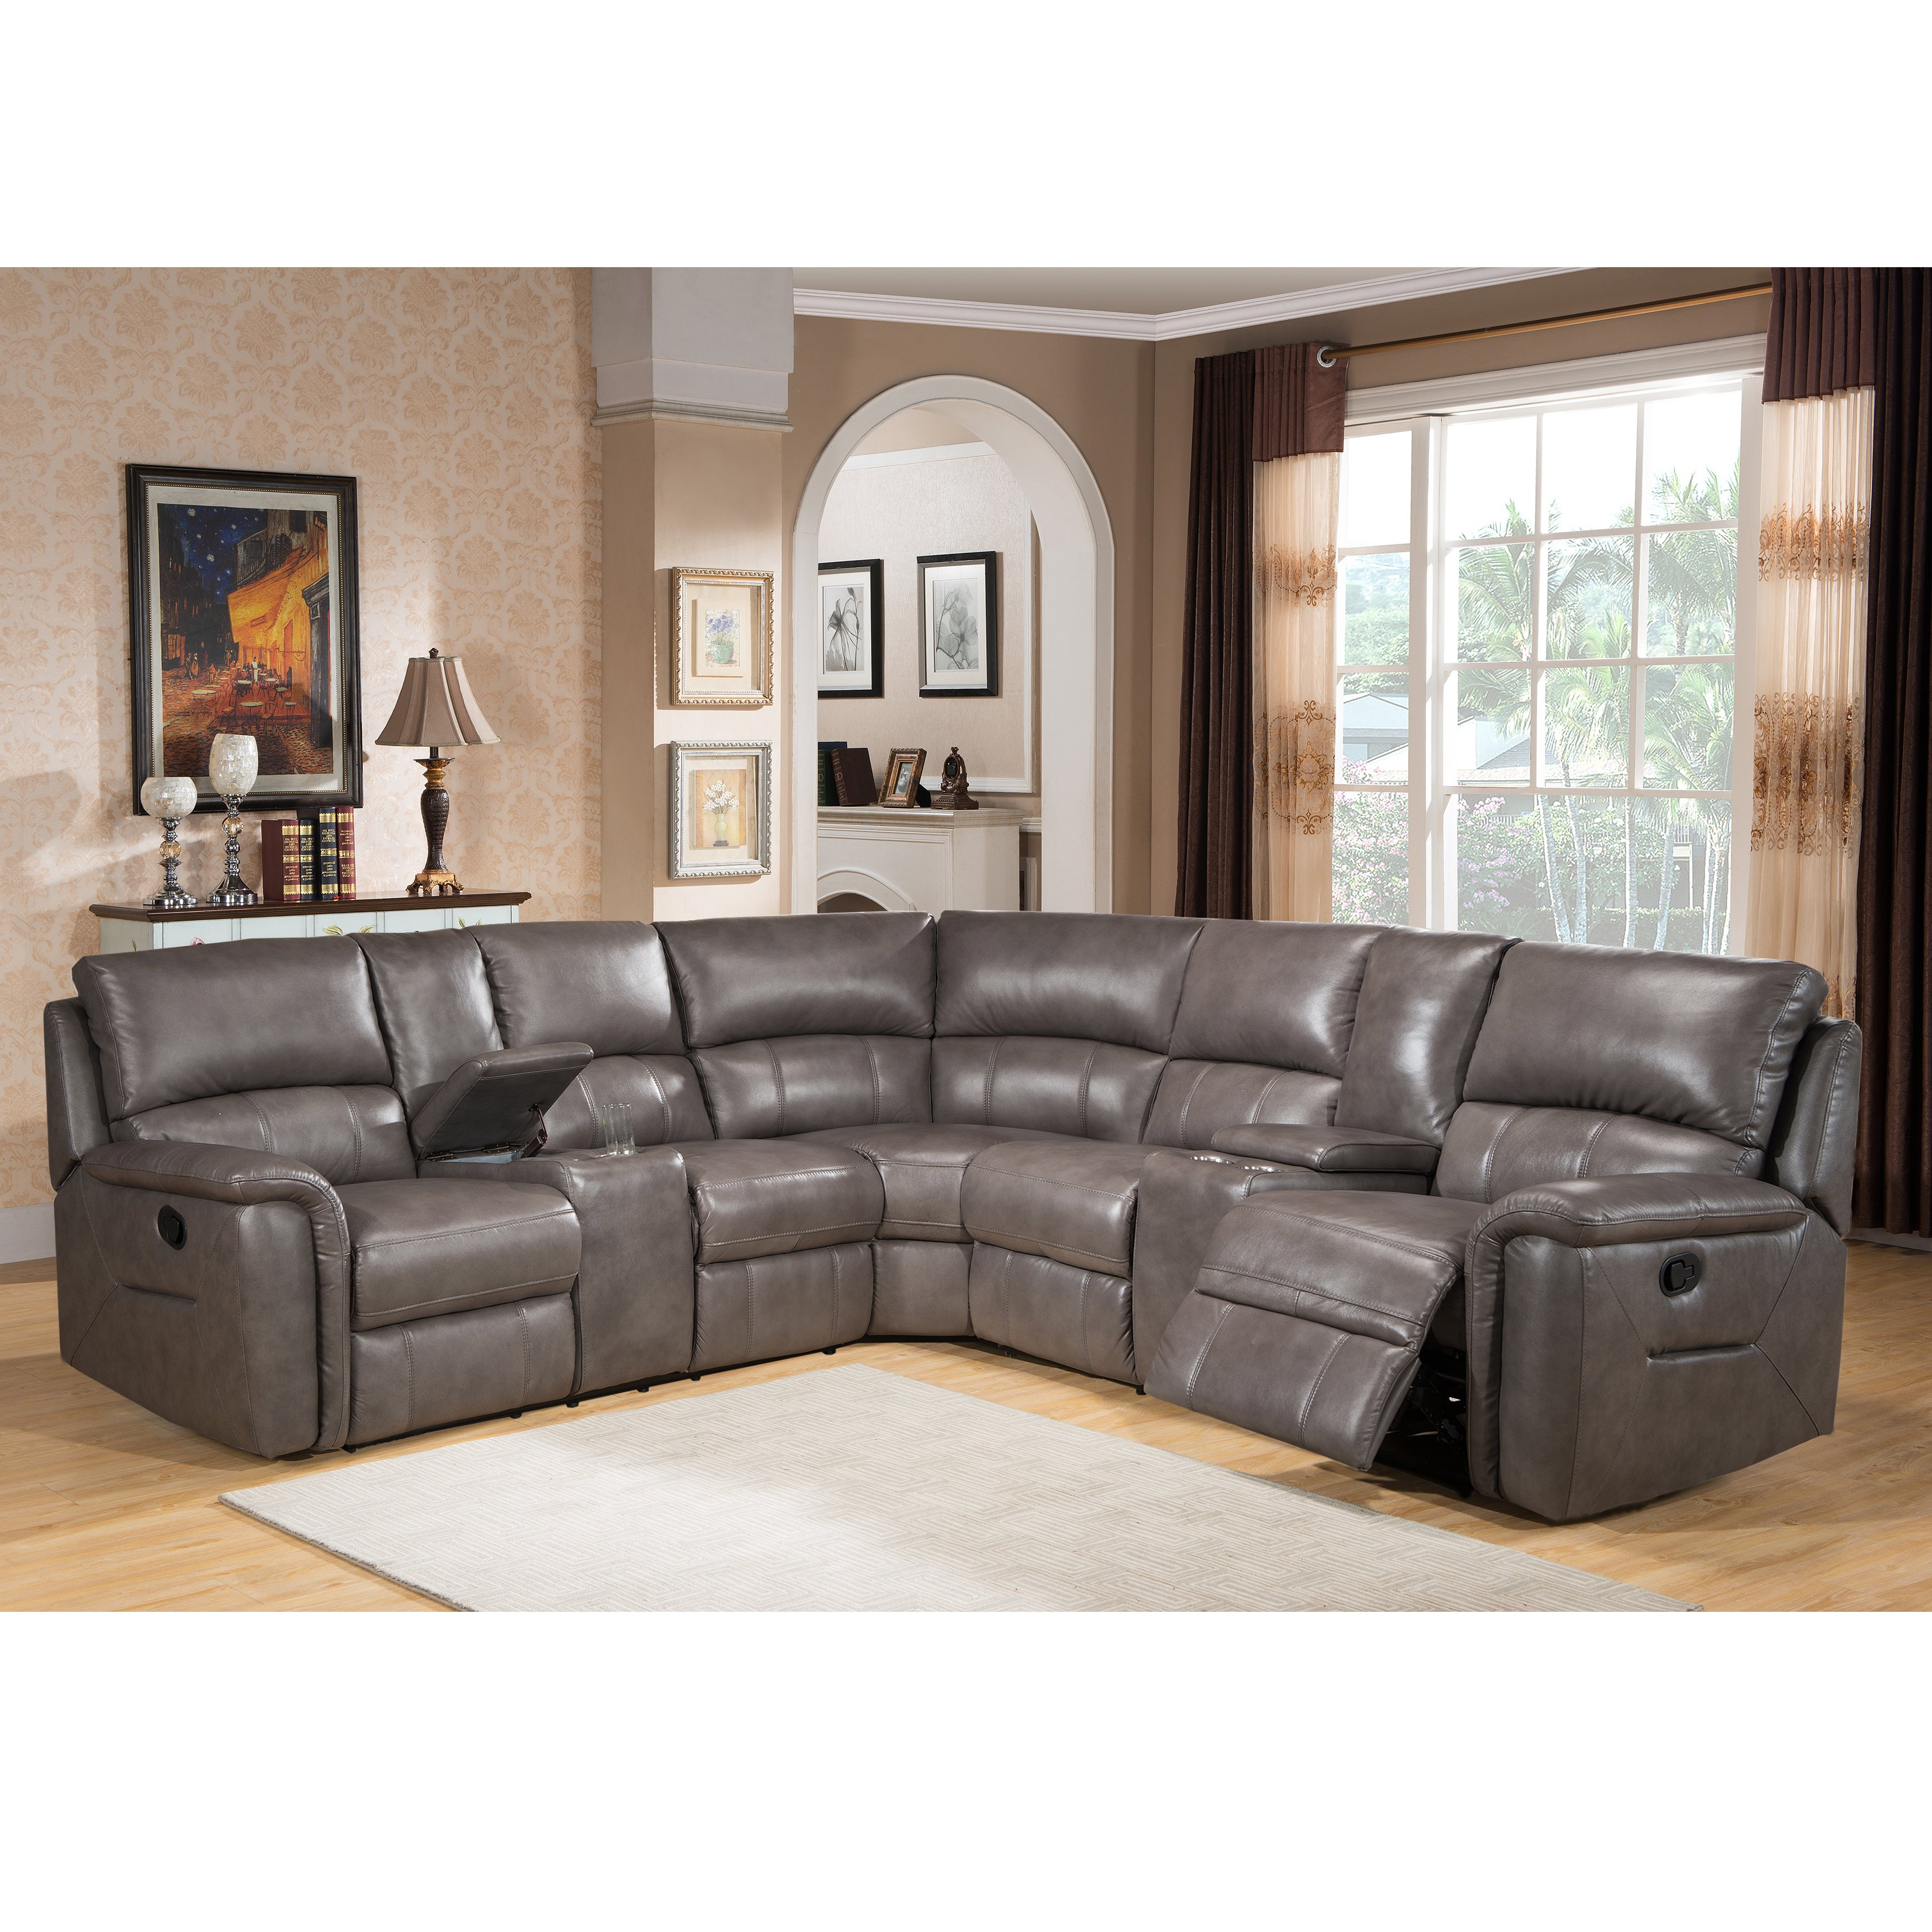 Well Known Travis Cognac Leather 6 Piece Power Reclining Sectionals With Power Headrest & Usb Throughout Unique Reclining Small Reclining Sectional In Reclining Sectional (View 10 of 20)